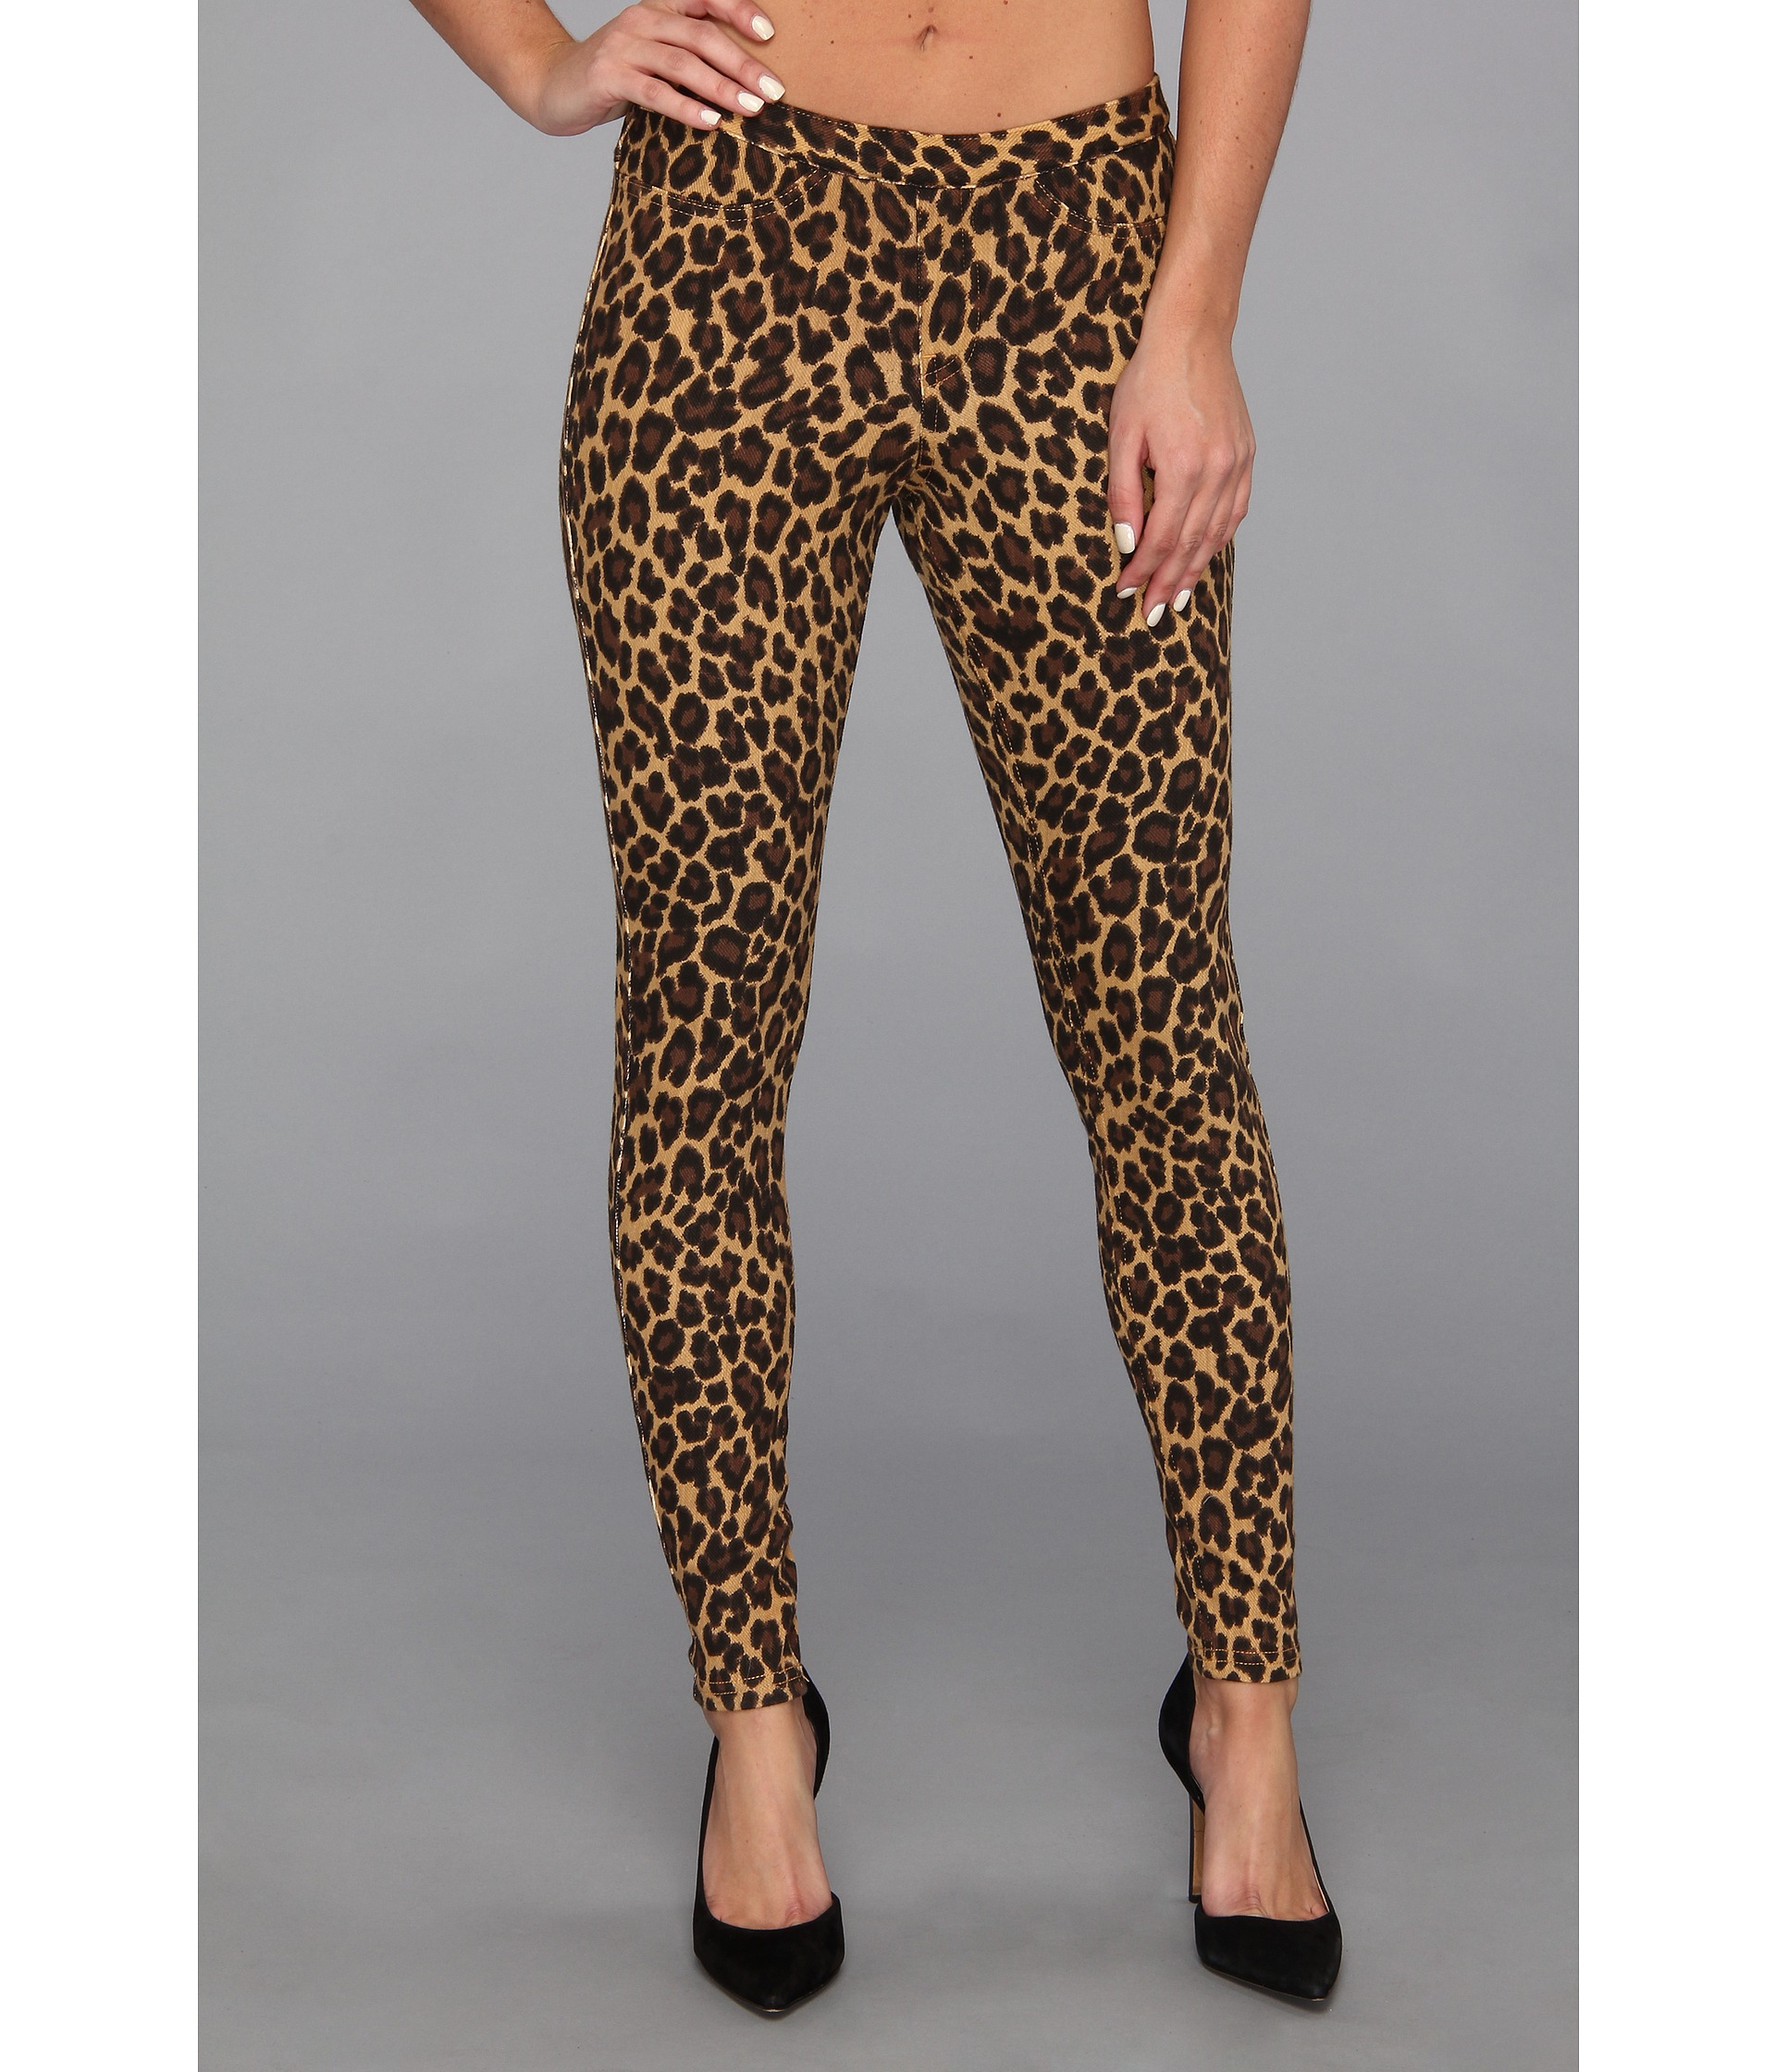 Discover Leopard Print leggings at Zazzle! Use your own images and text or choose from thousands of patterns and designs. Start your search today!